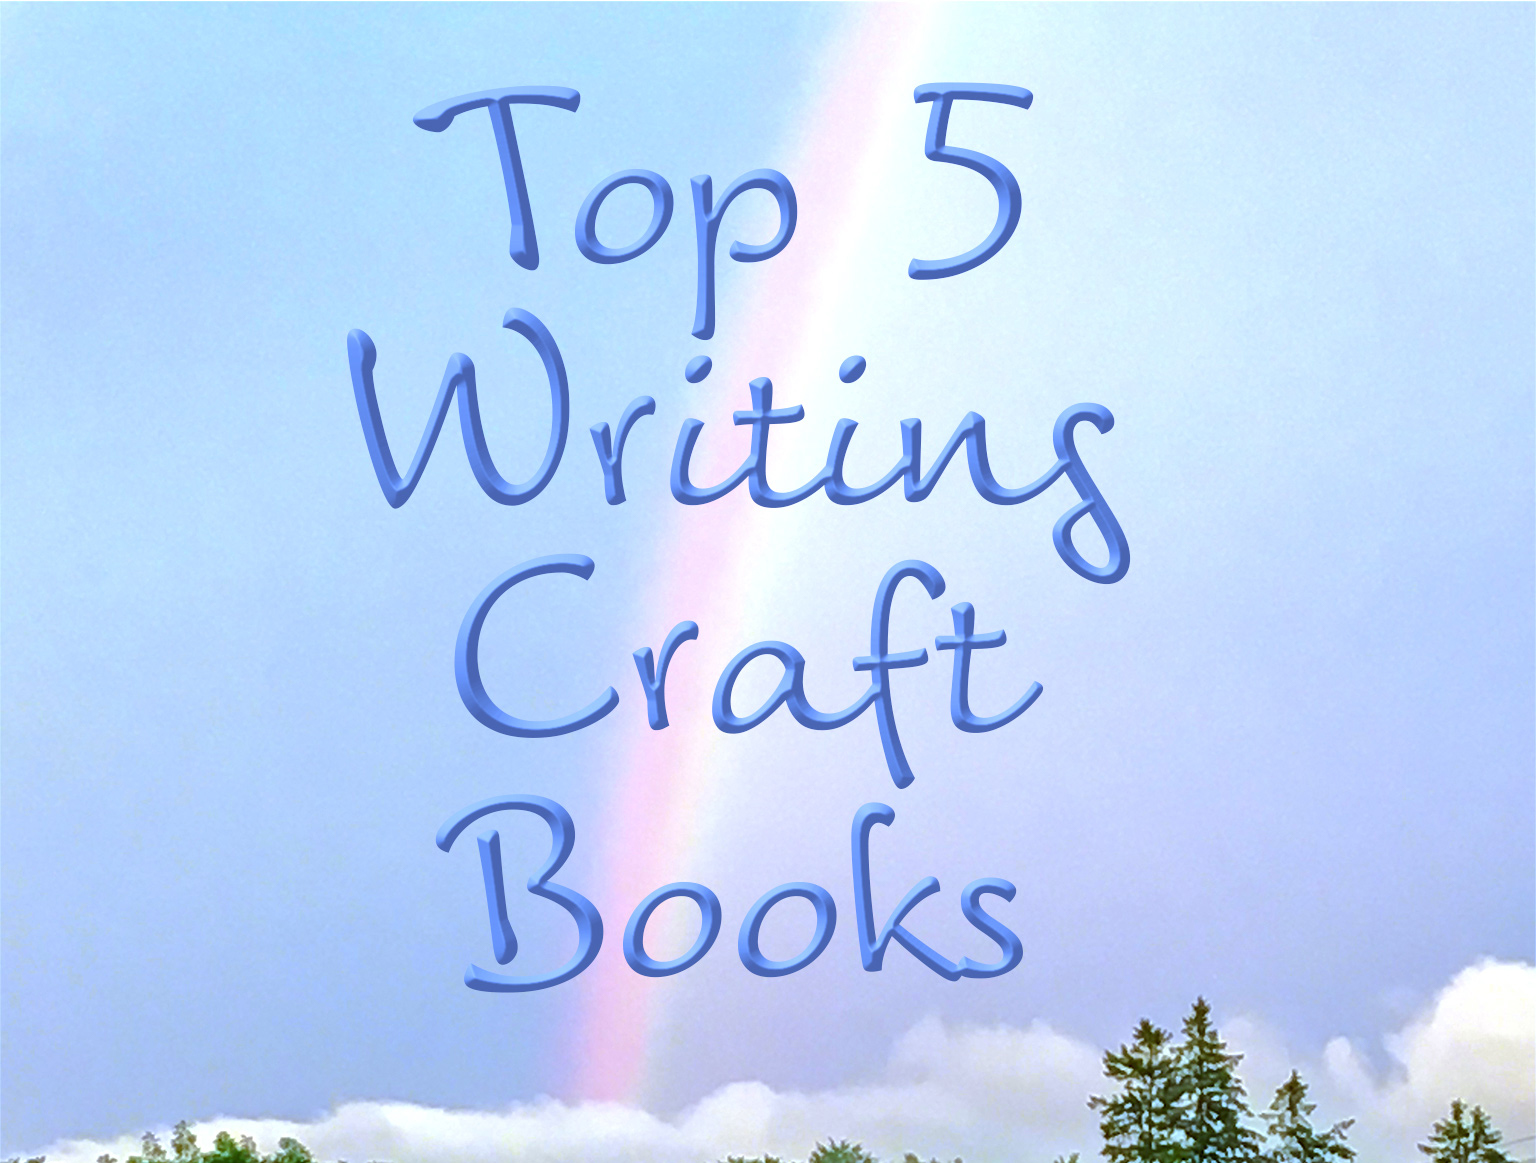 Top 5 Writing Craft Books